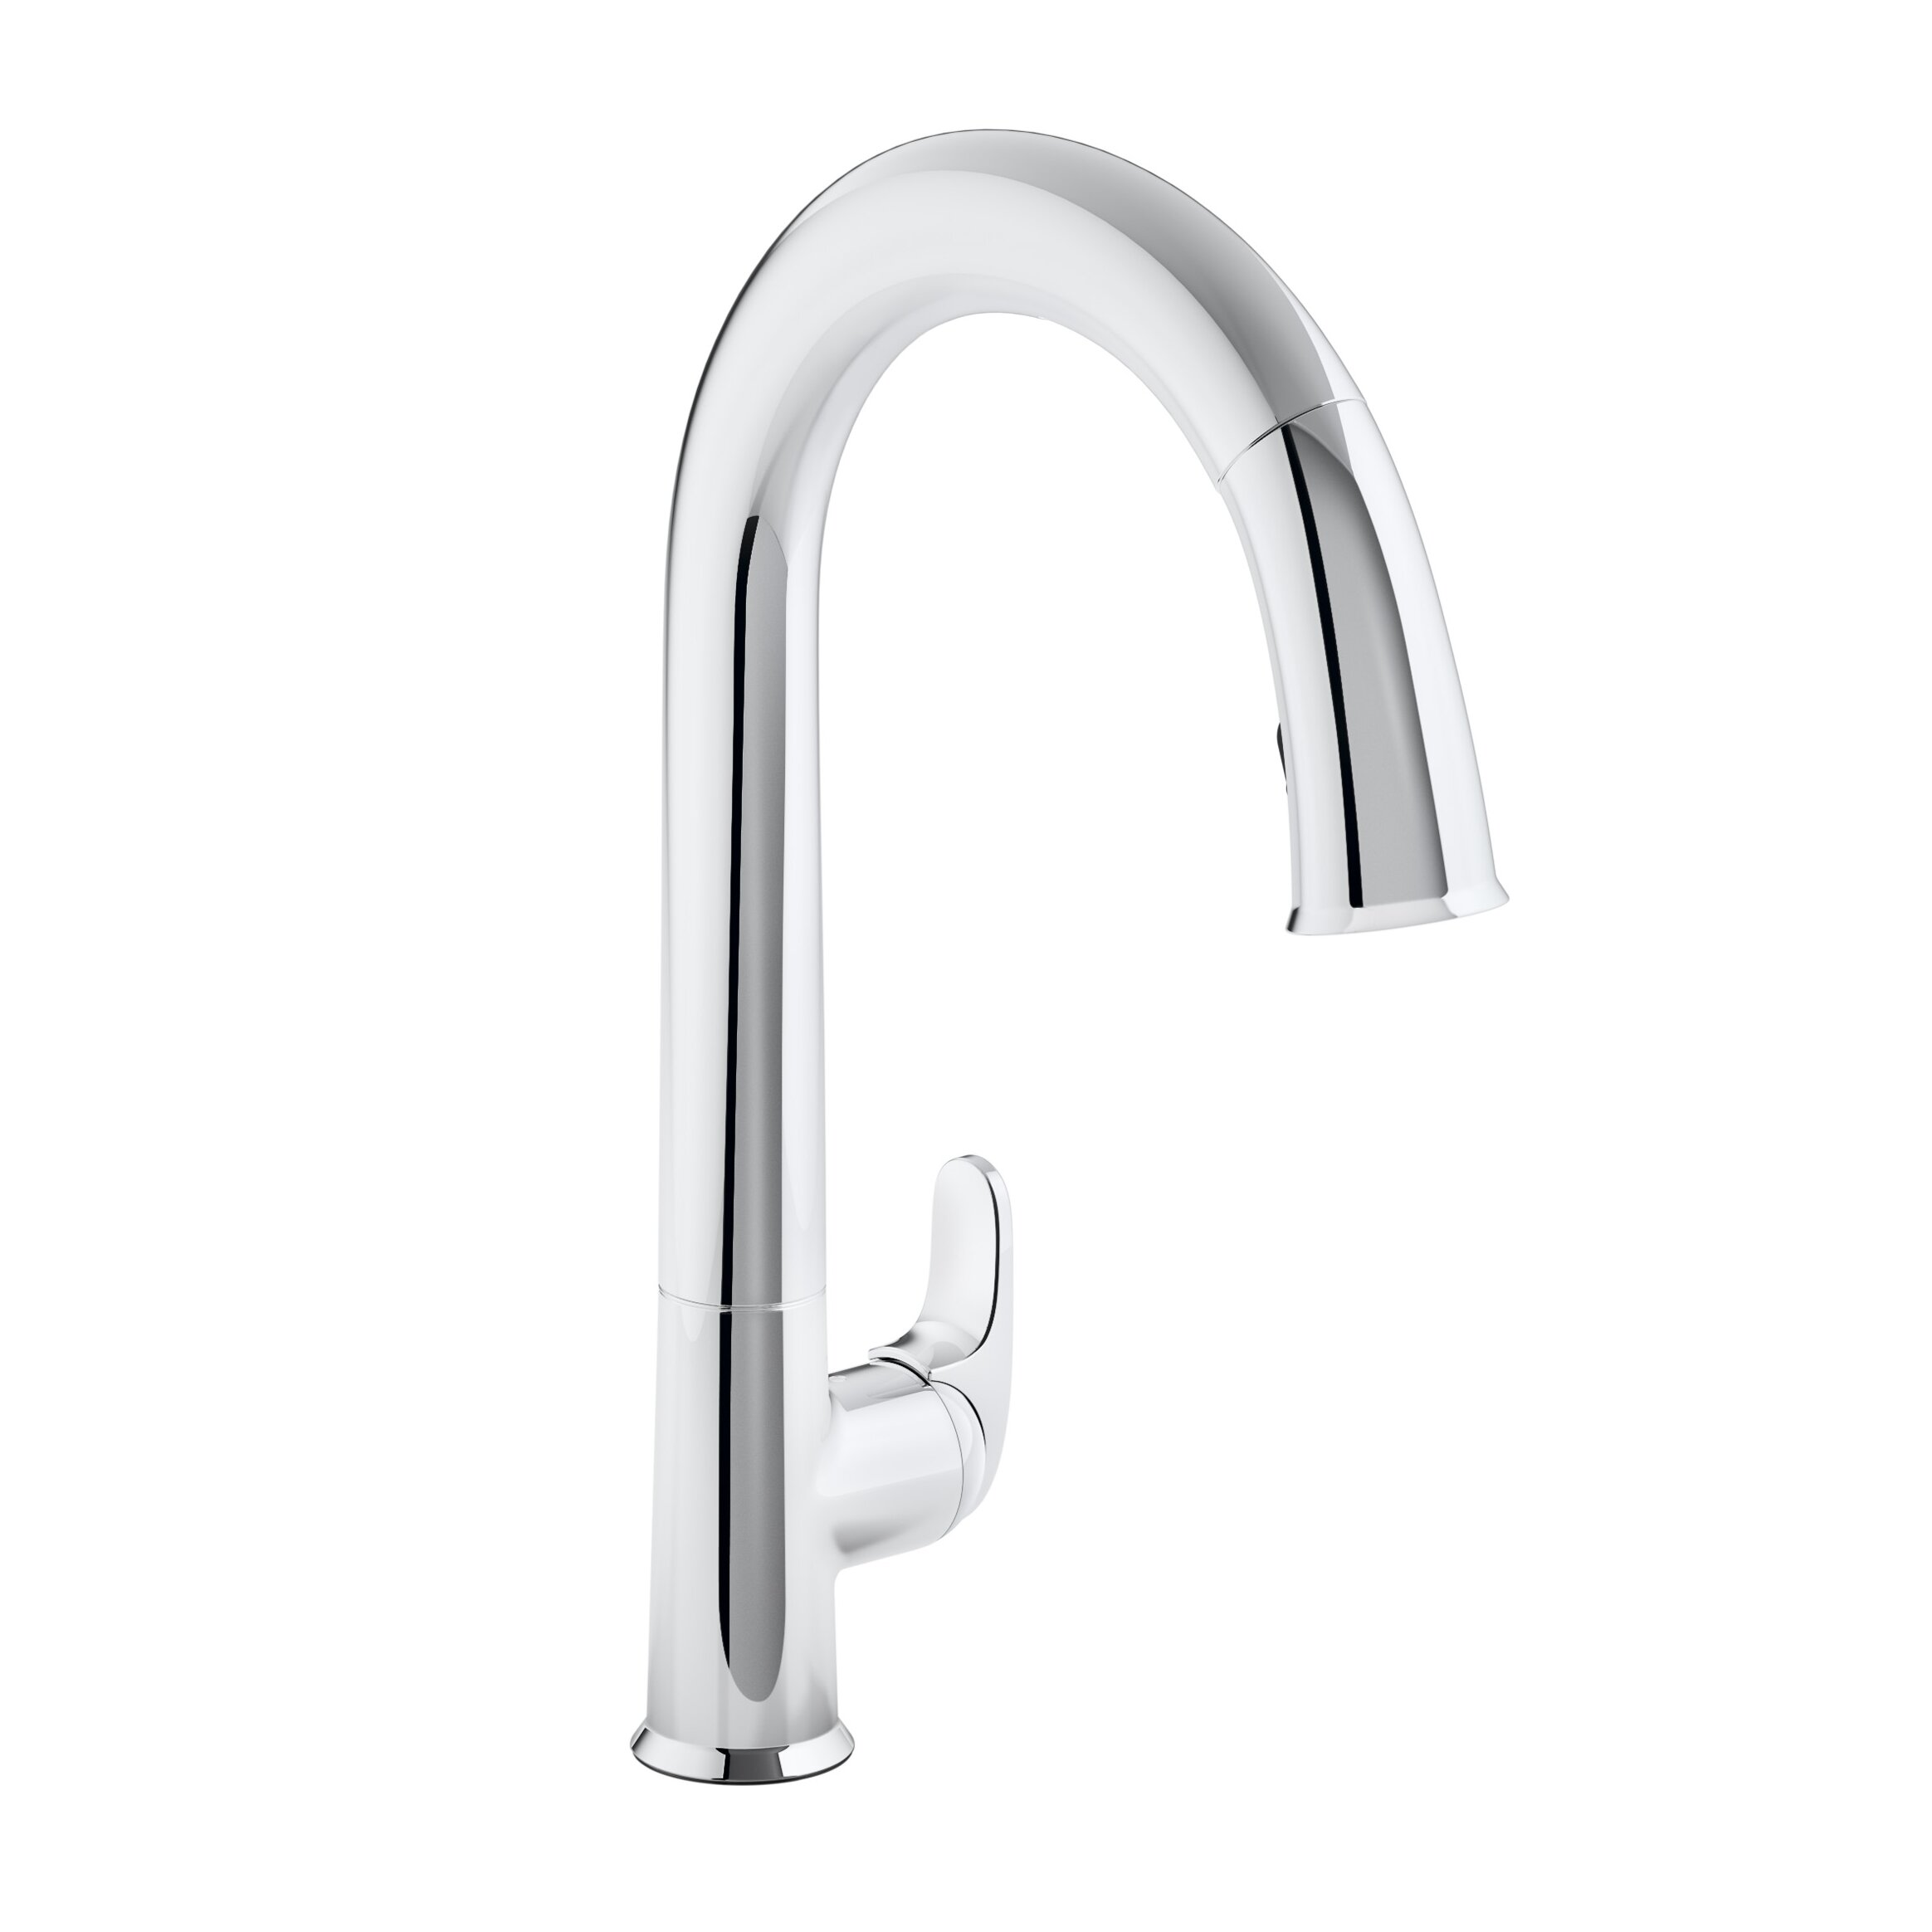 Kitchen Pull Down Faucet Reviews Kohler Sensate Touchless Kitchen Faucet With 15 1 2 Quot Pull